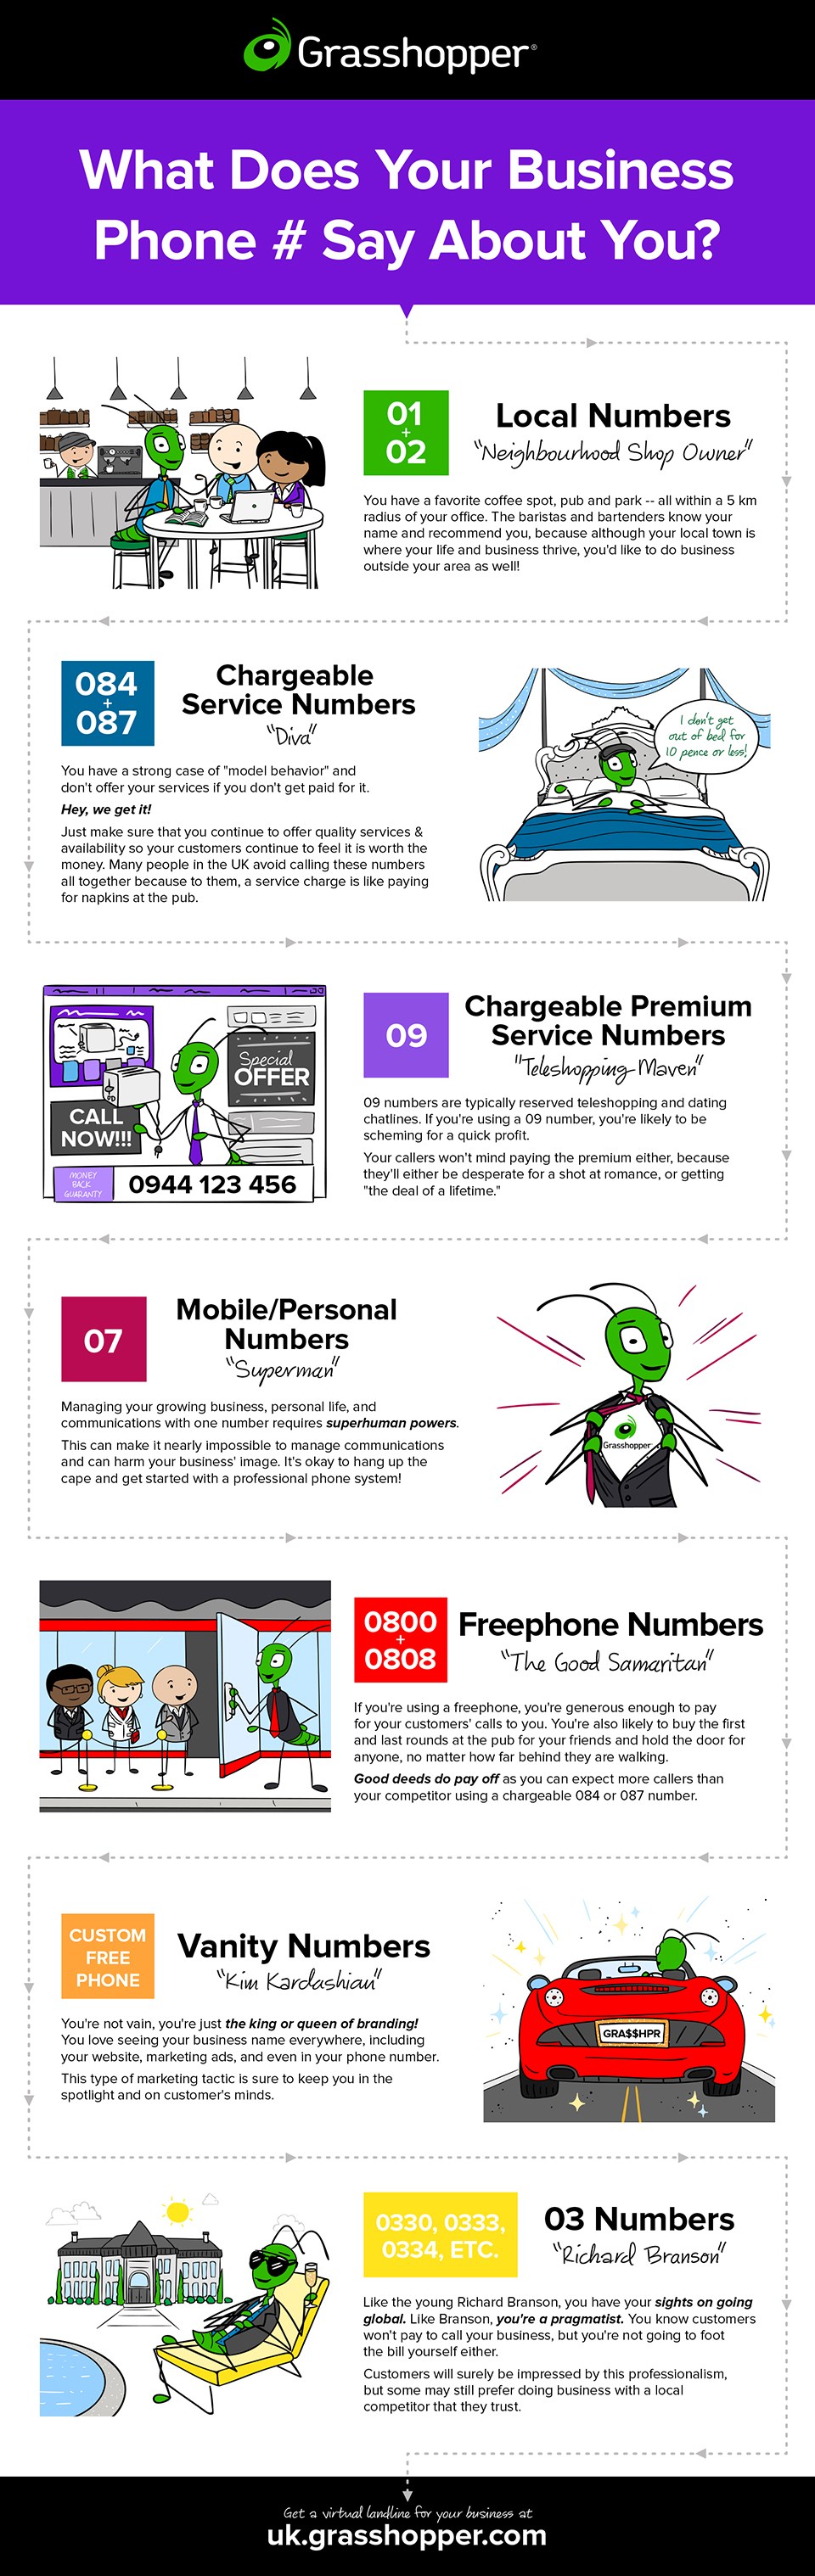 Freephone, 03, 0800, local numbers and what each says about your business